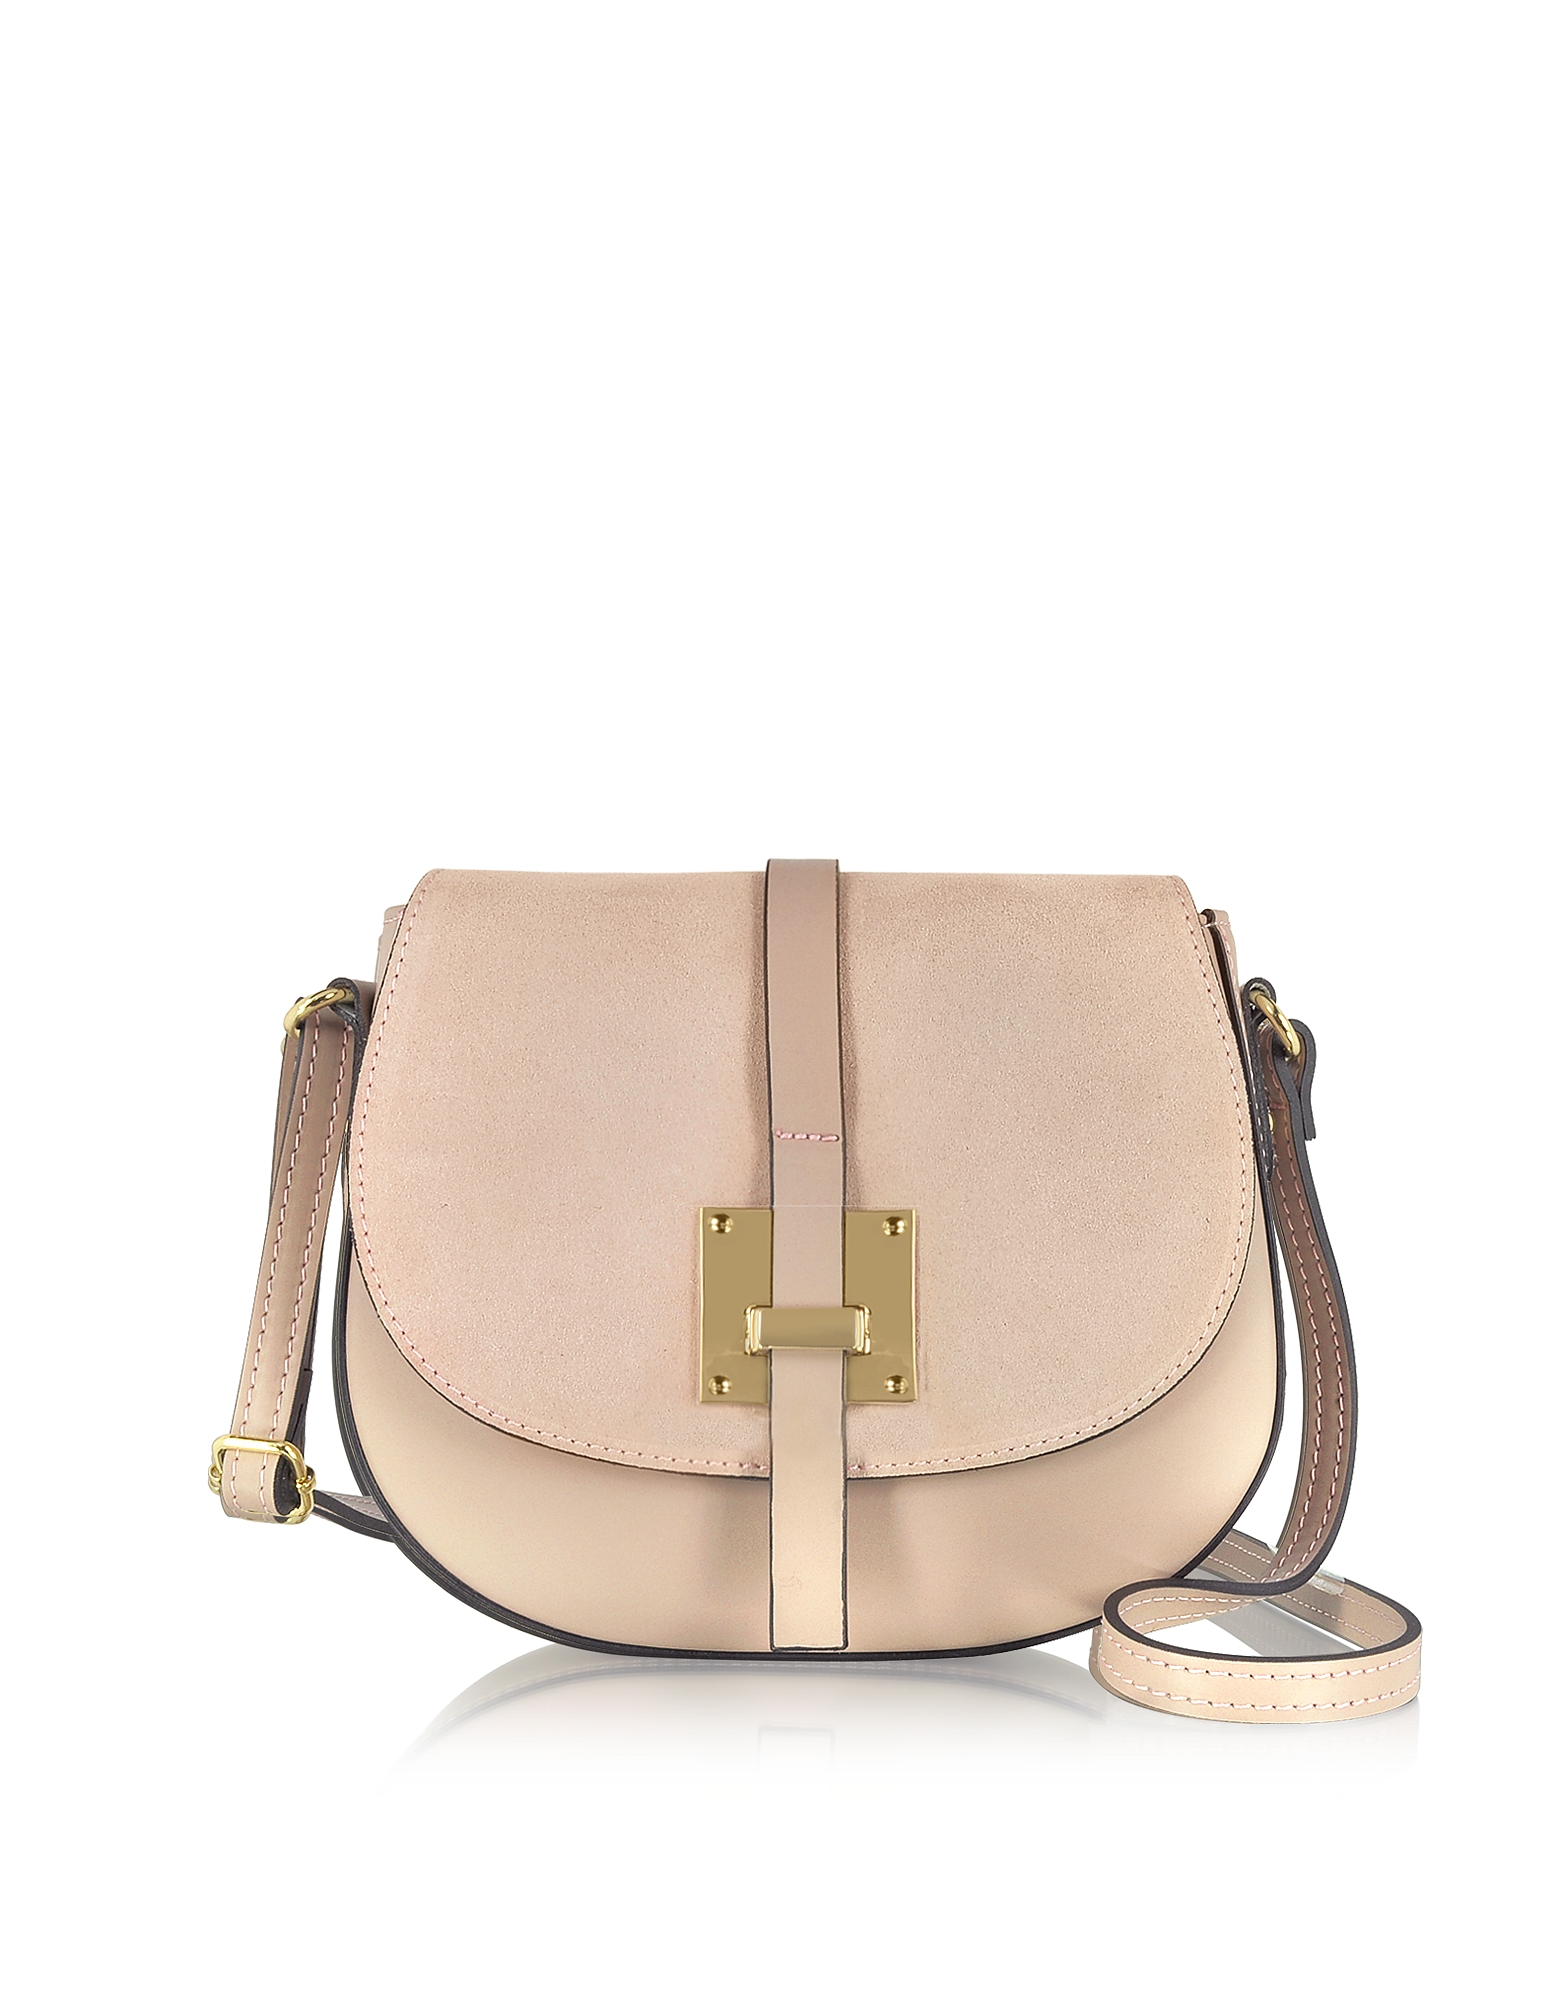 Pollia Nude Leather and Suede Crossbody Bag